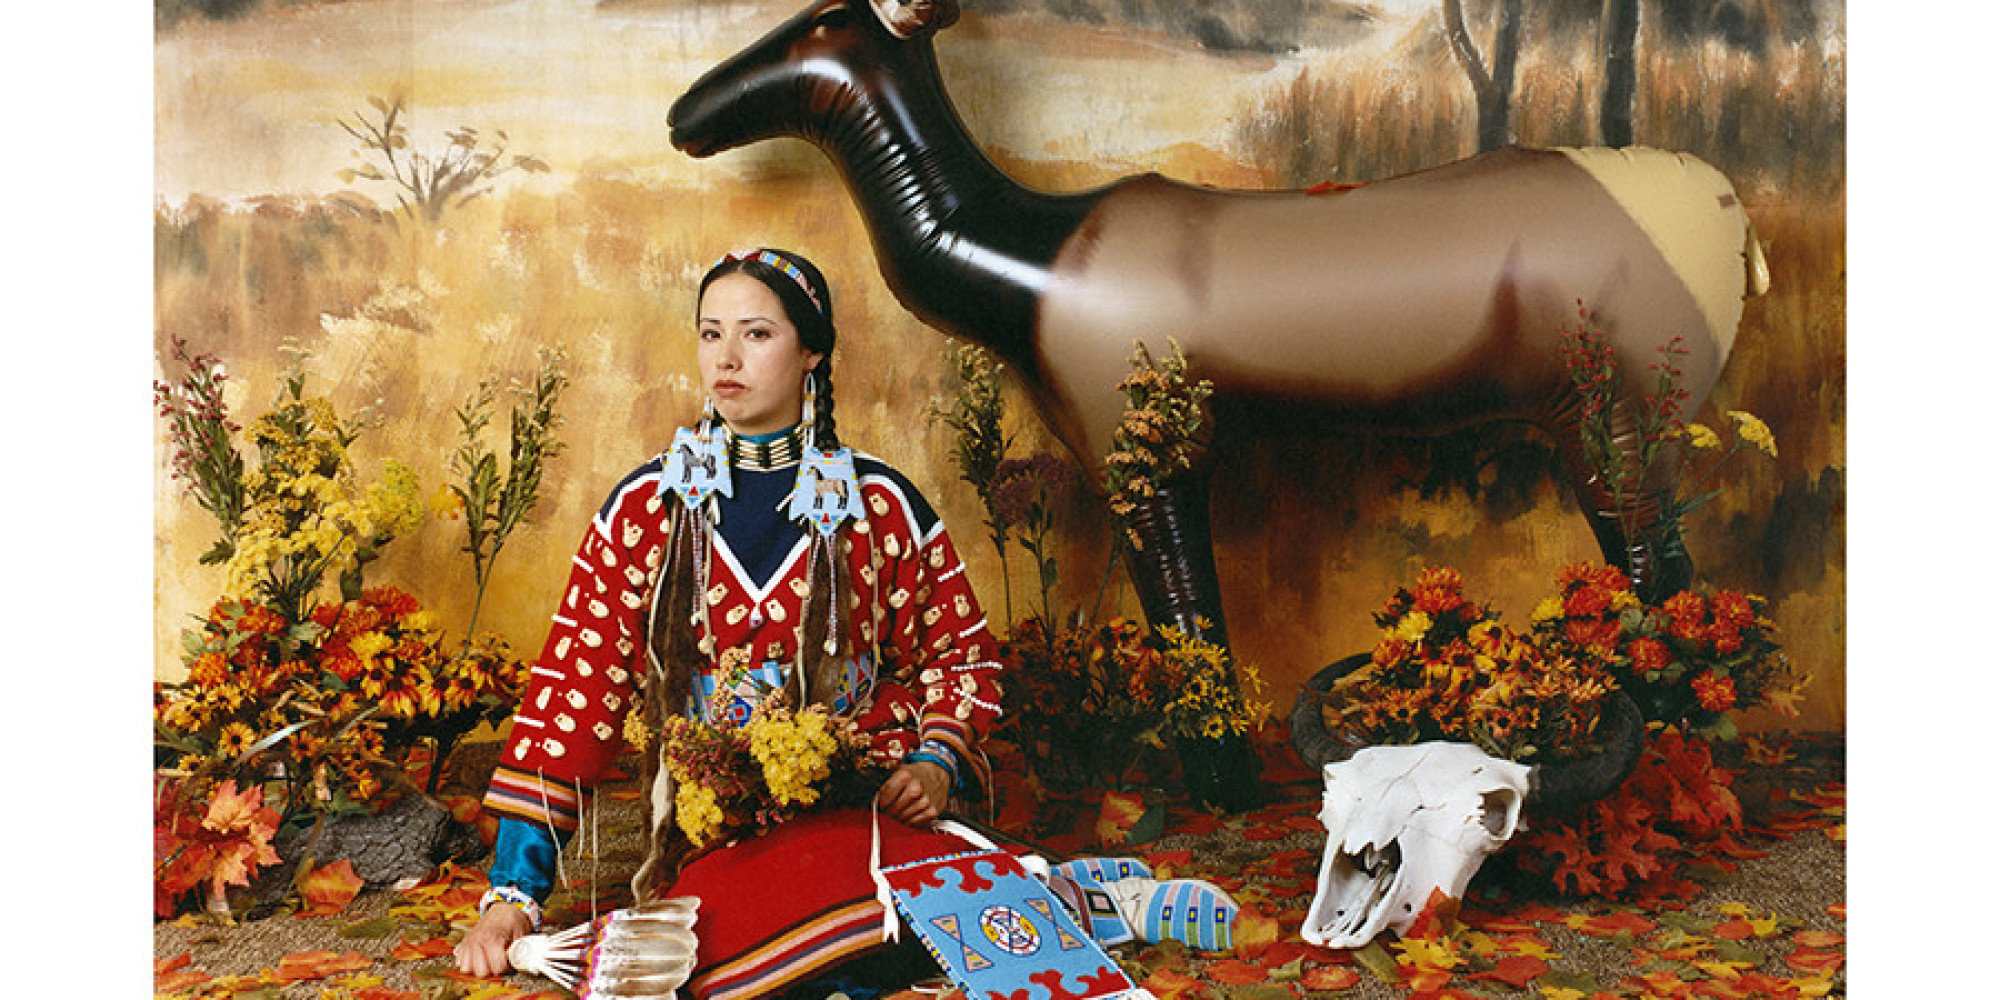 11 Powerful Artworks That Reveal The Diversity Of Contemporary American Indian Art